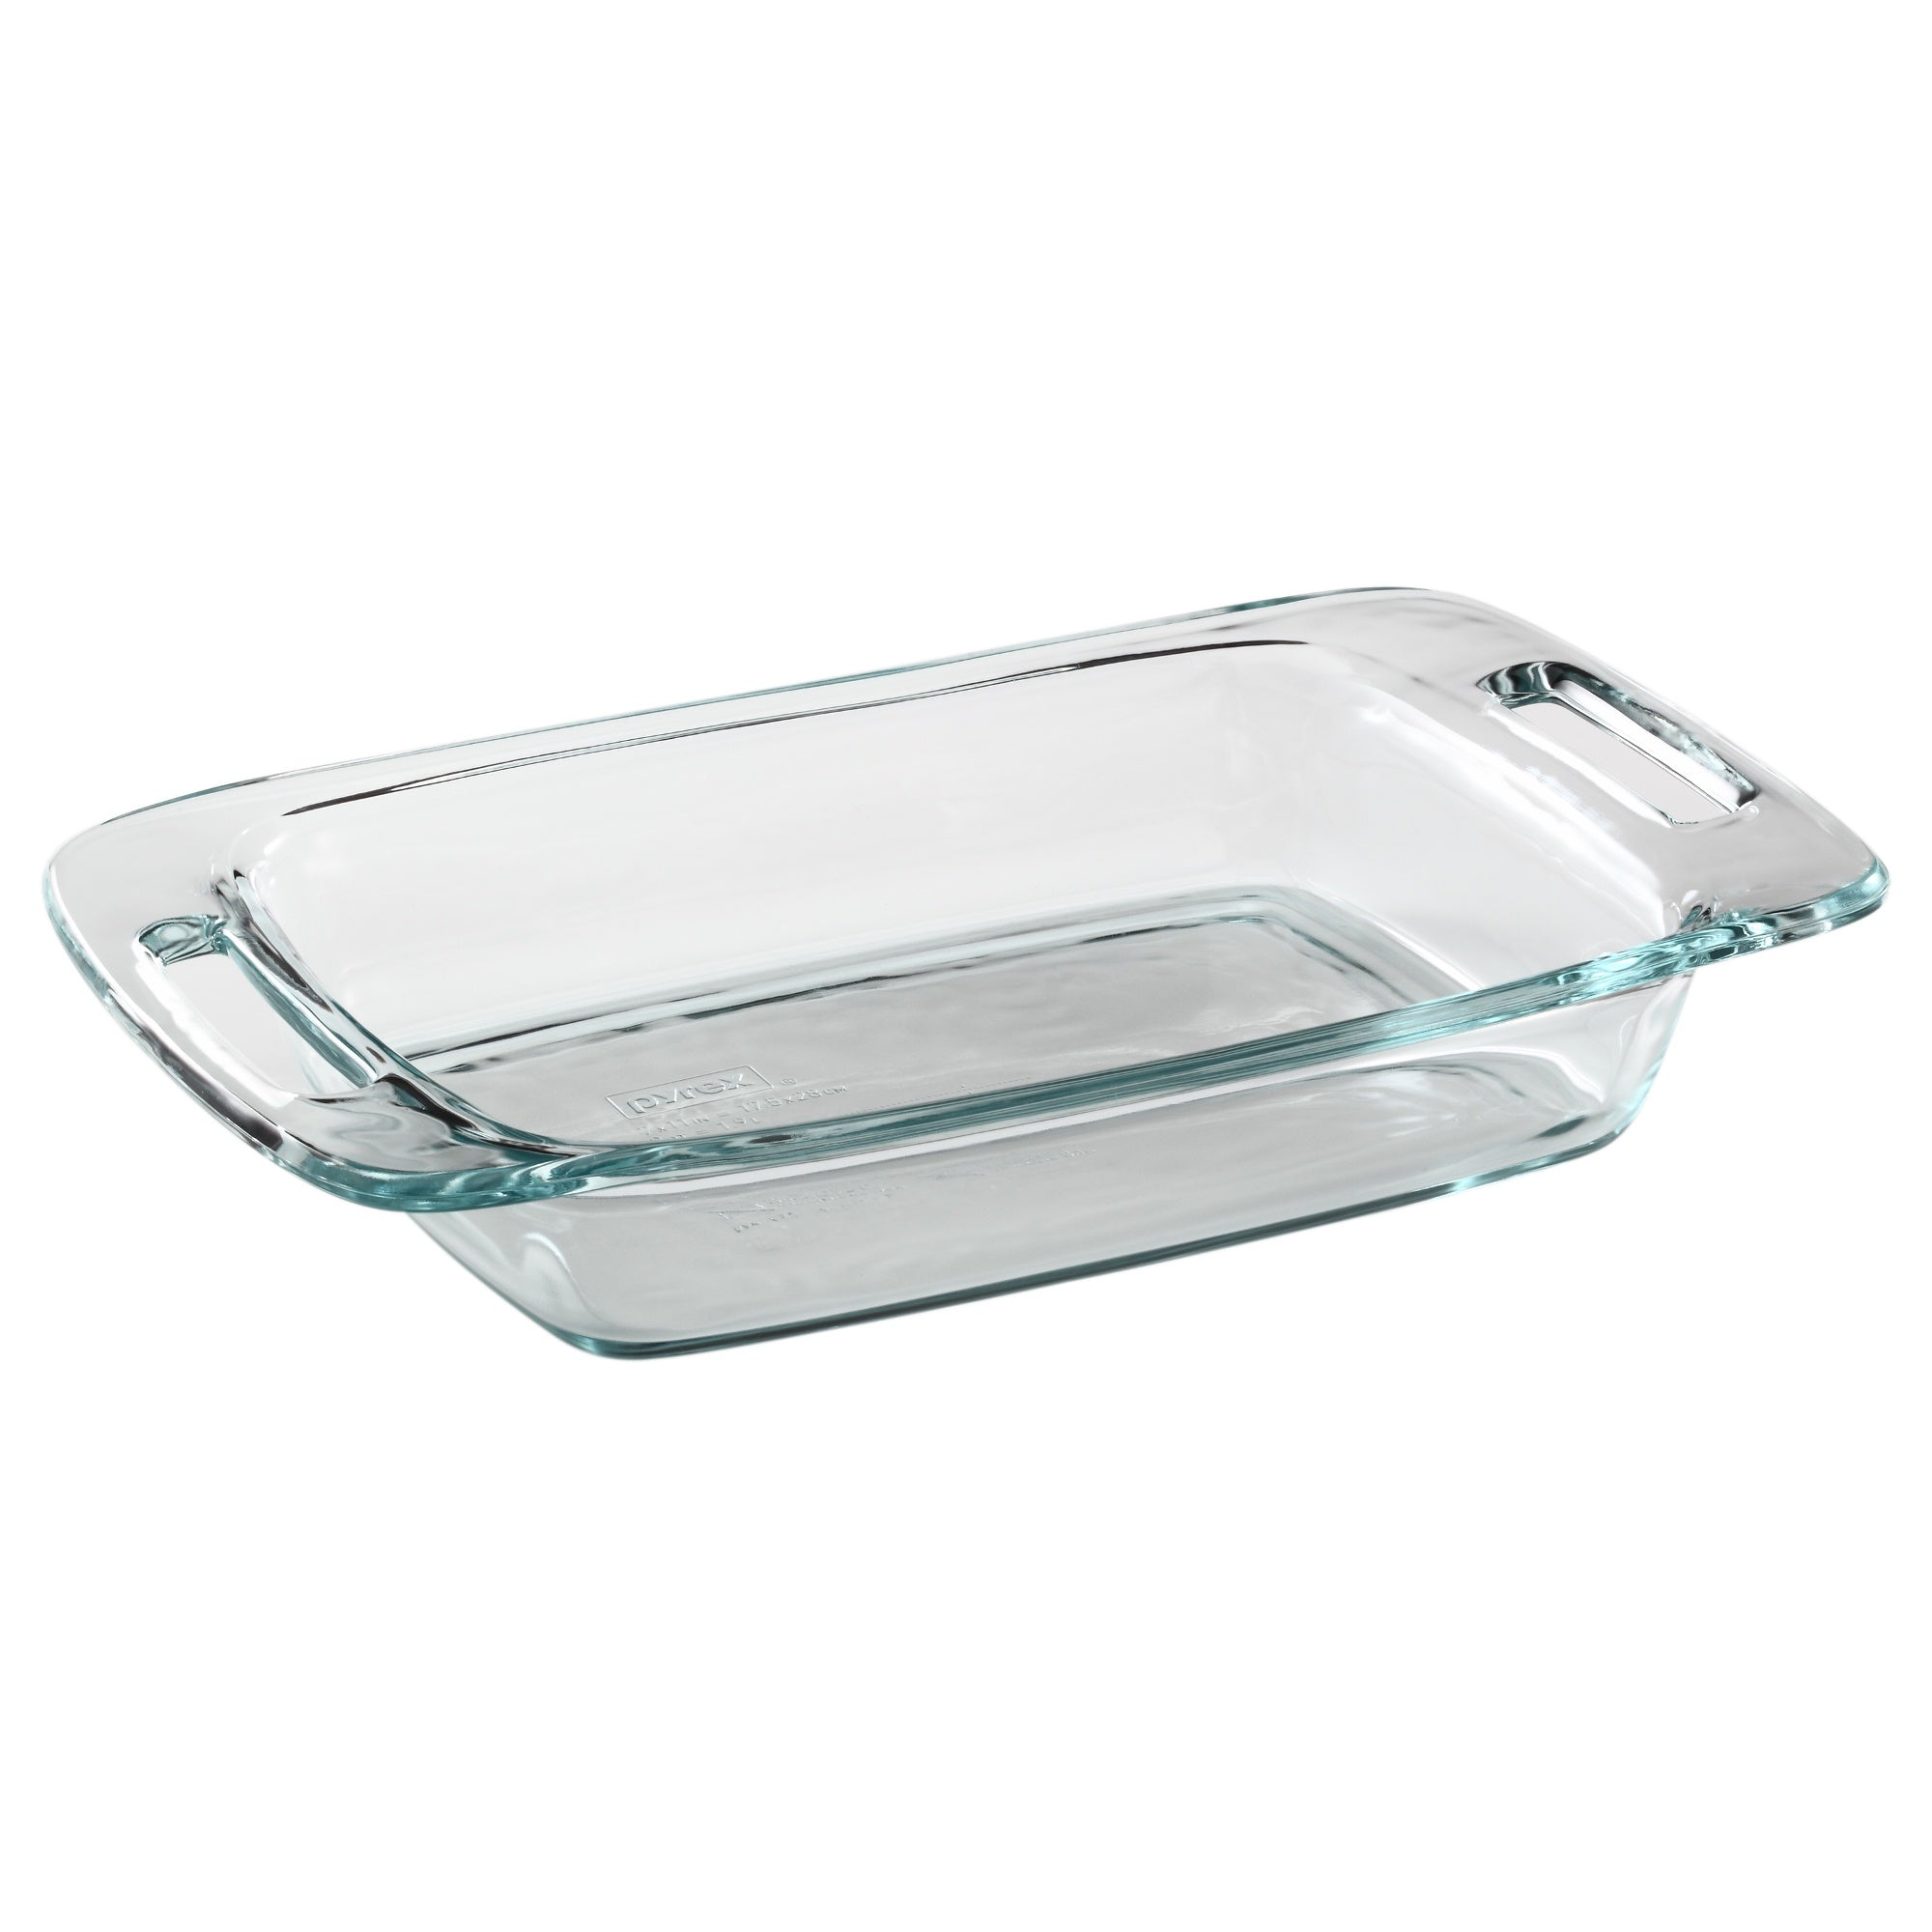 Pyrex GBW Easy Grab 1.9L Oblong Baking Dish-1085781